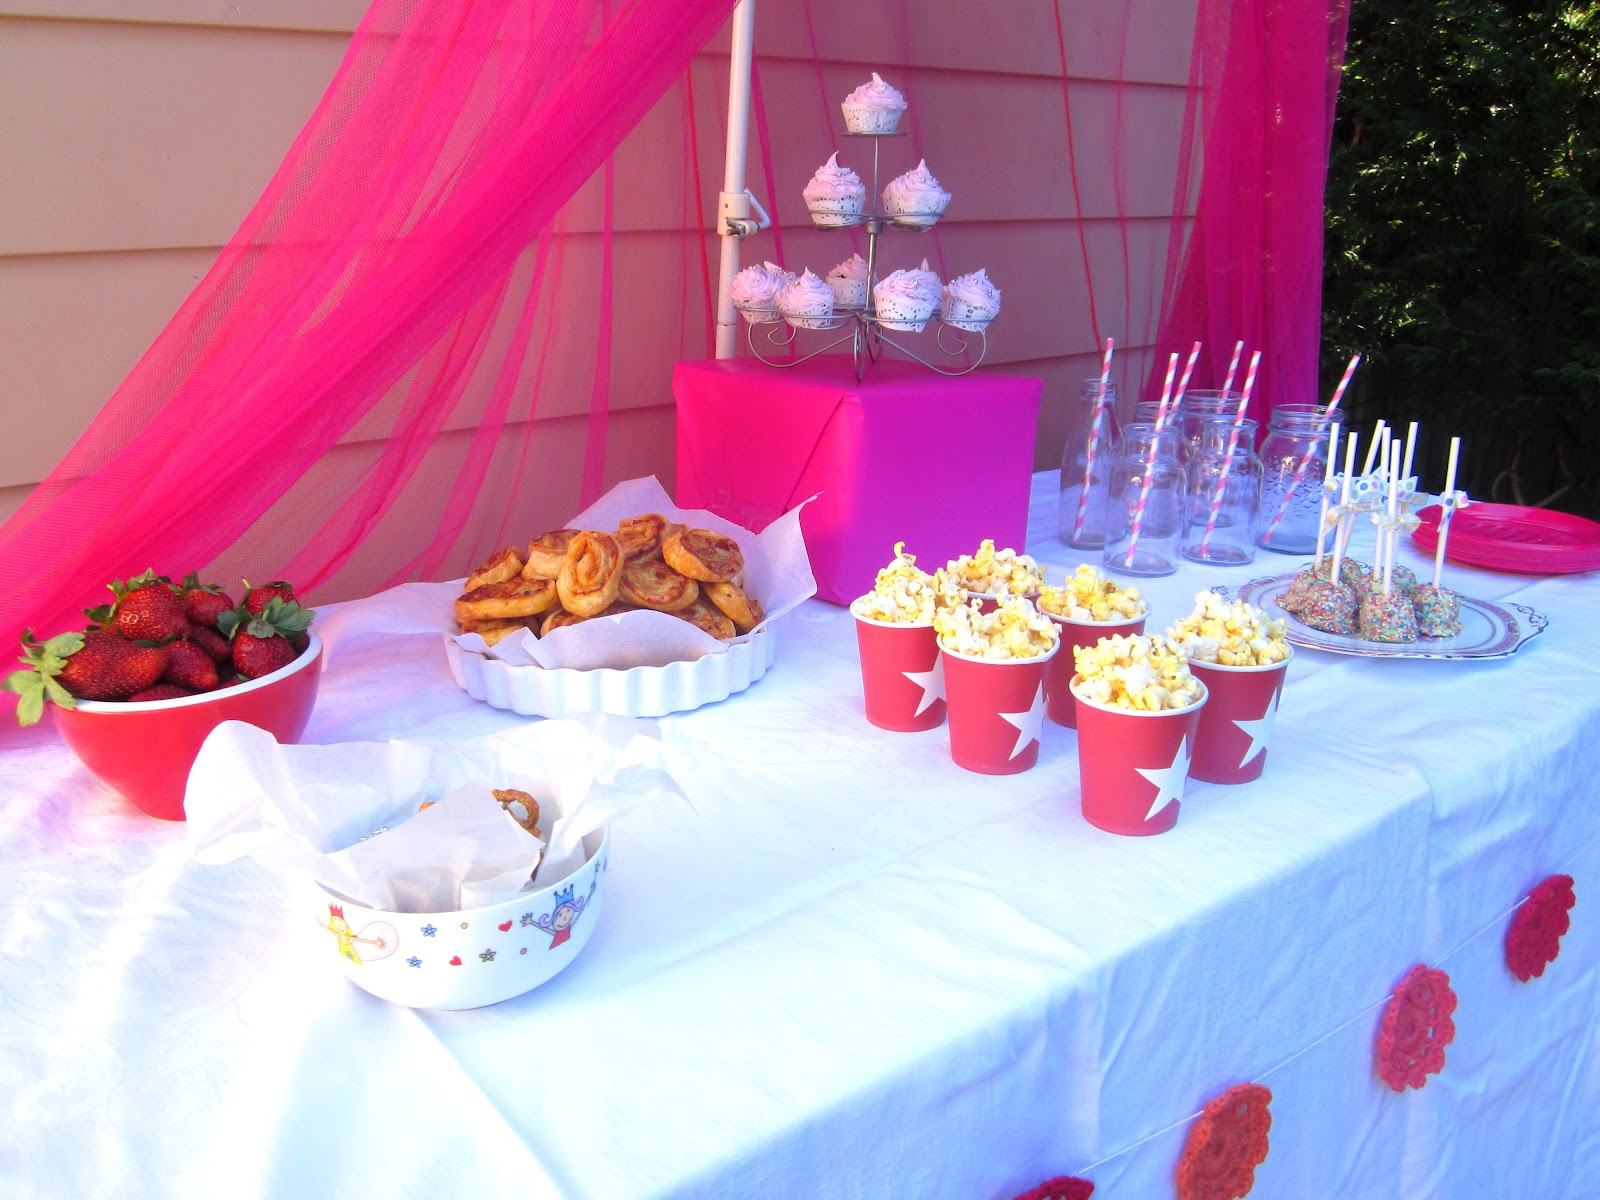 Desire empire simple food ideas for a little girls party for Easy food ideas for parties